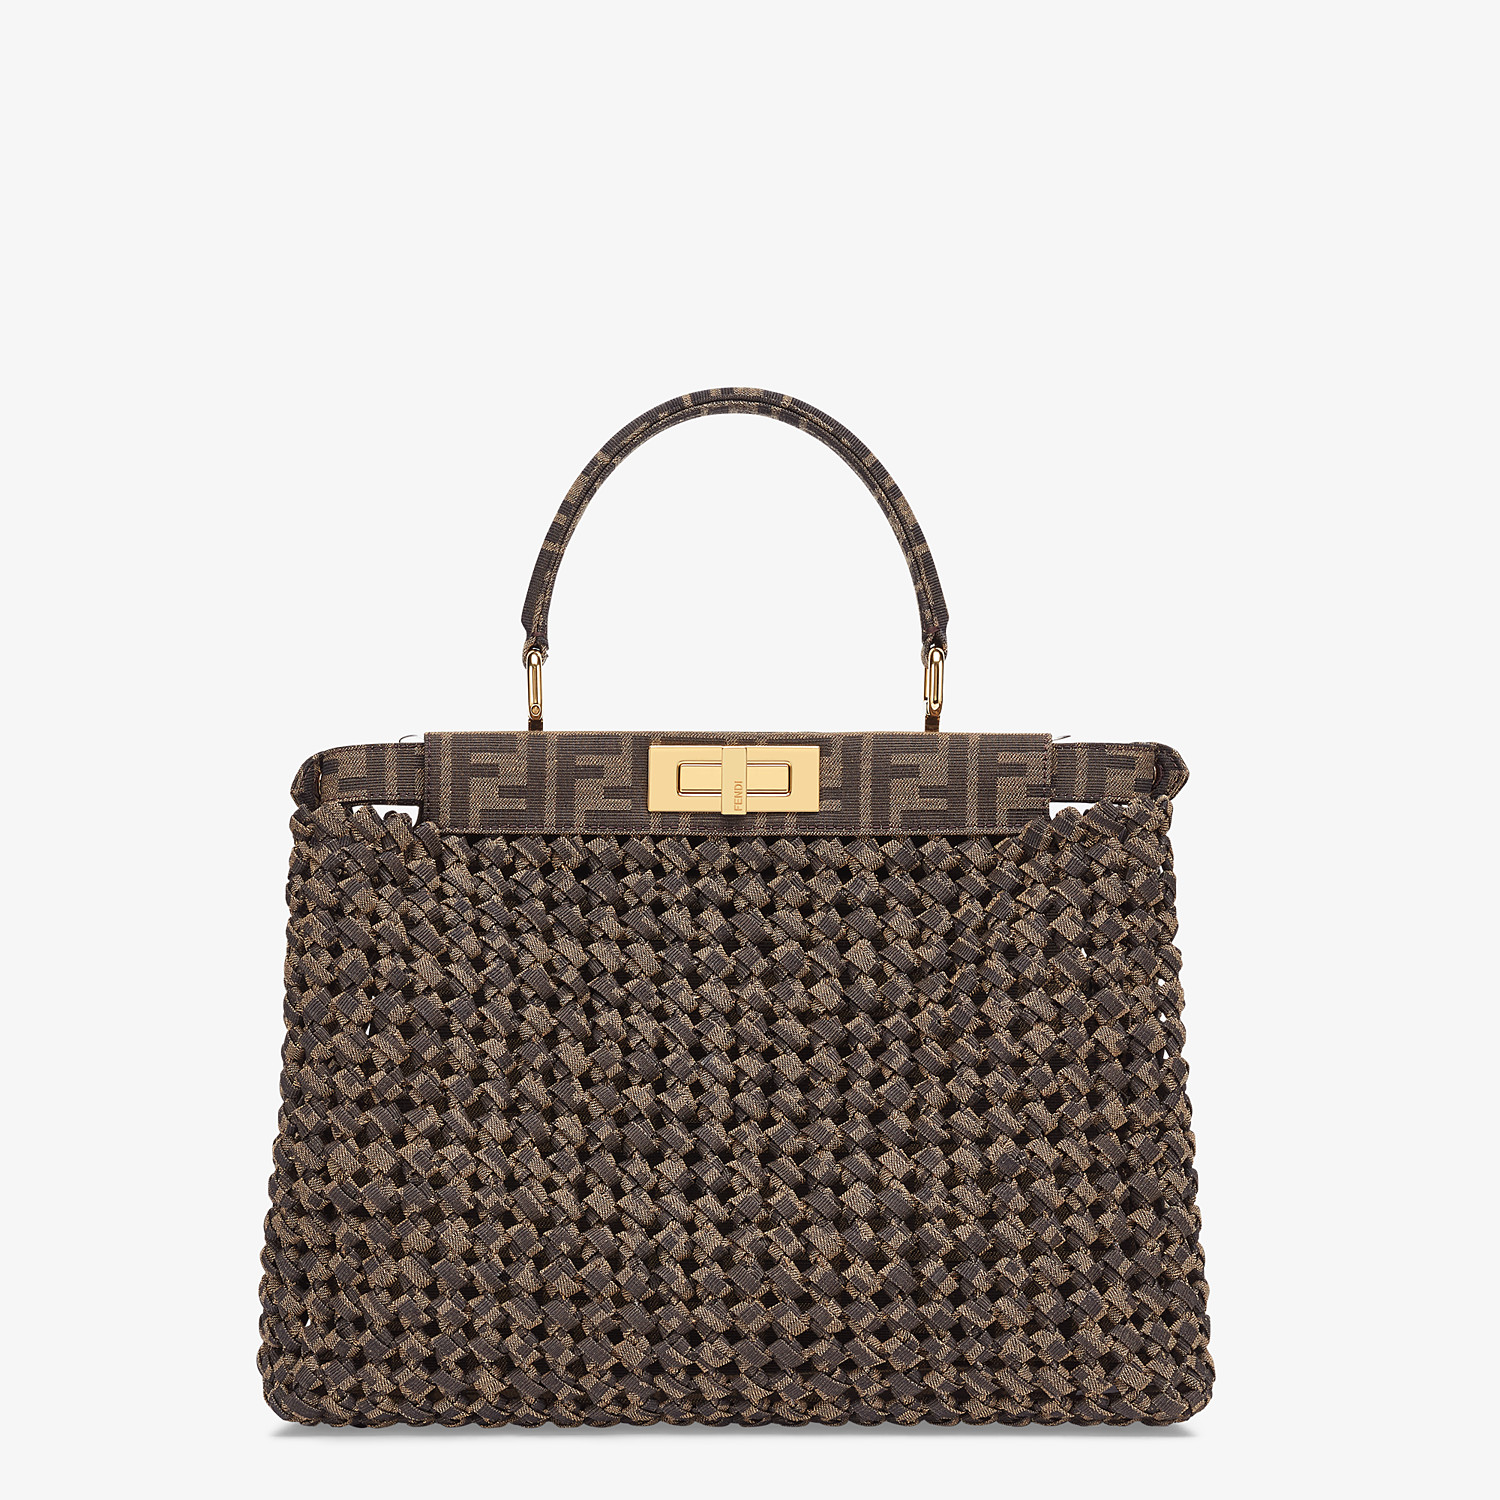 FENDI PEEKABOO ICONIC MEDIUM - Jacquard fabric interlace bag - view 4 detail